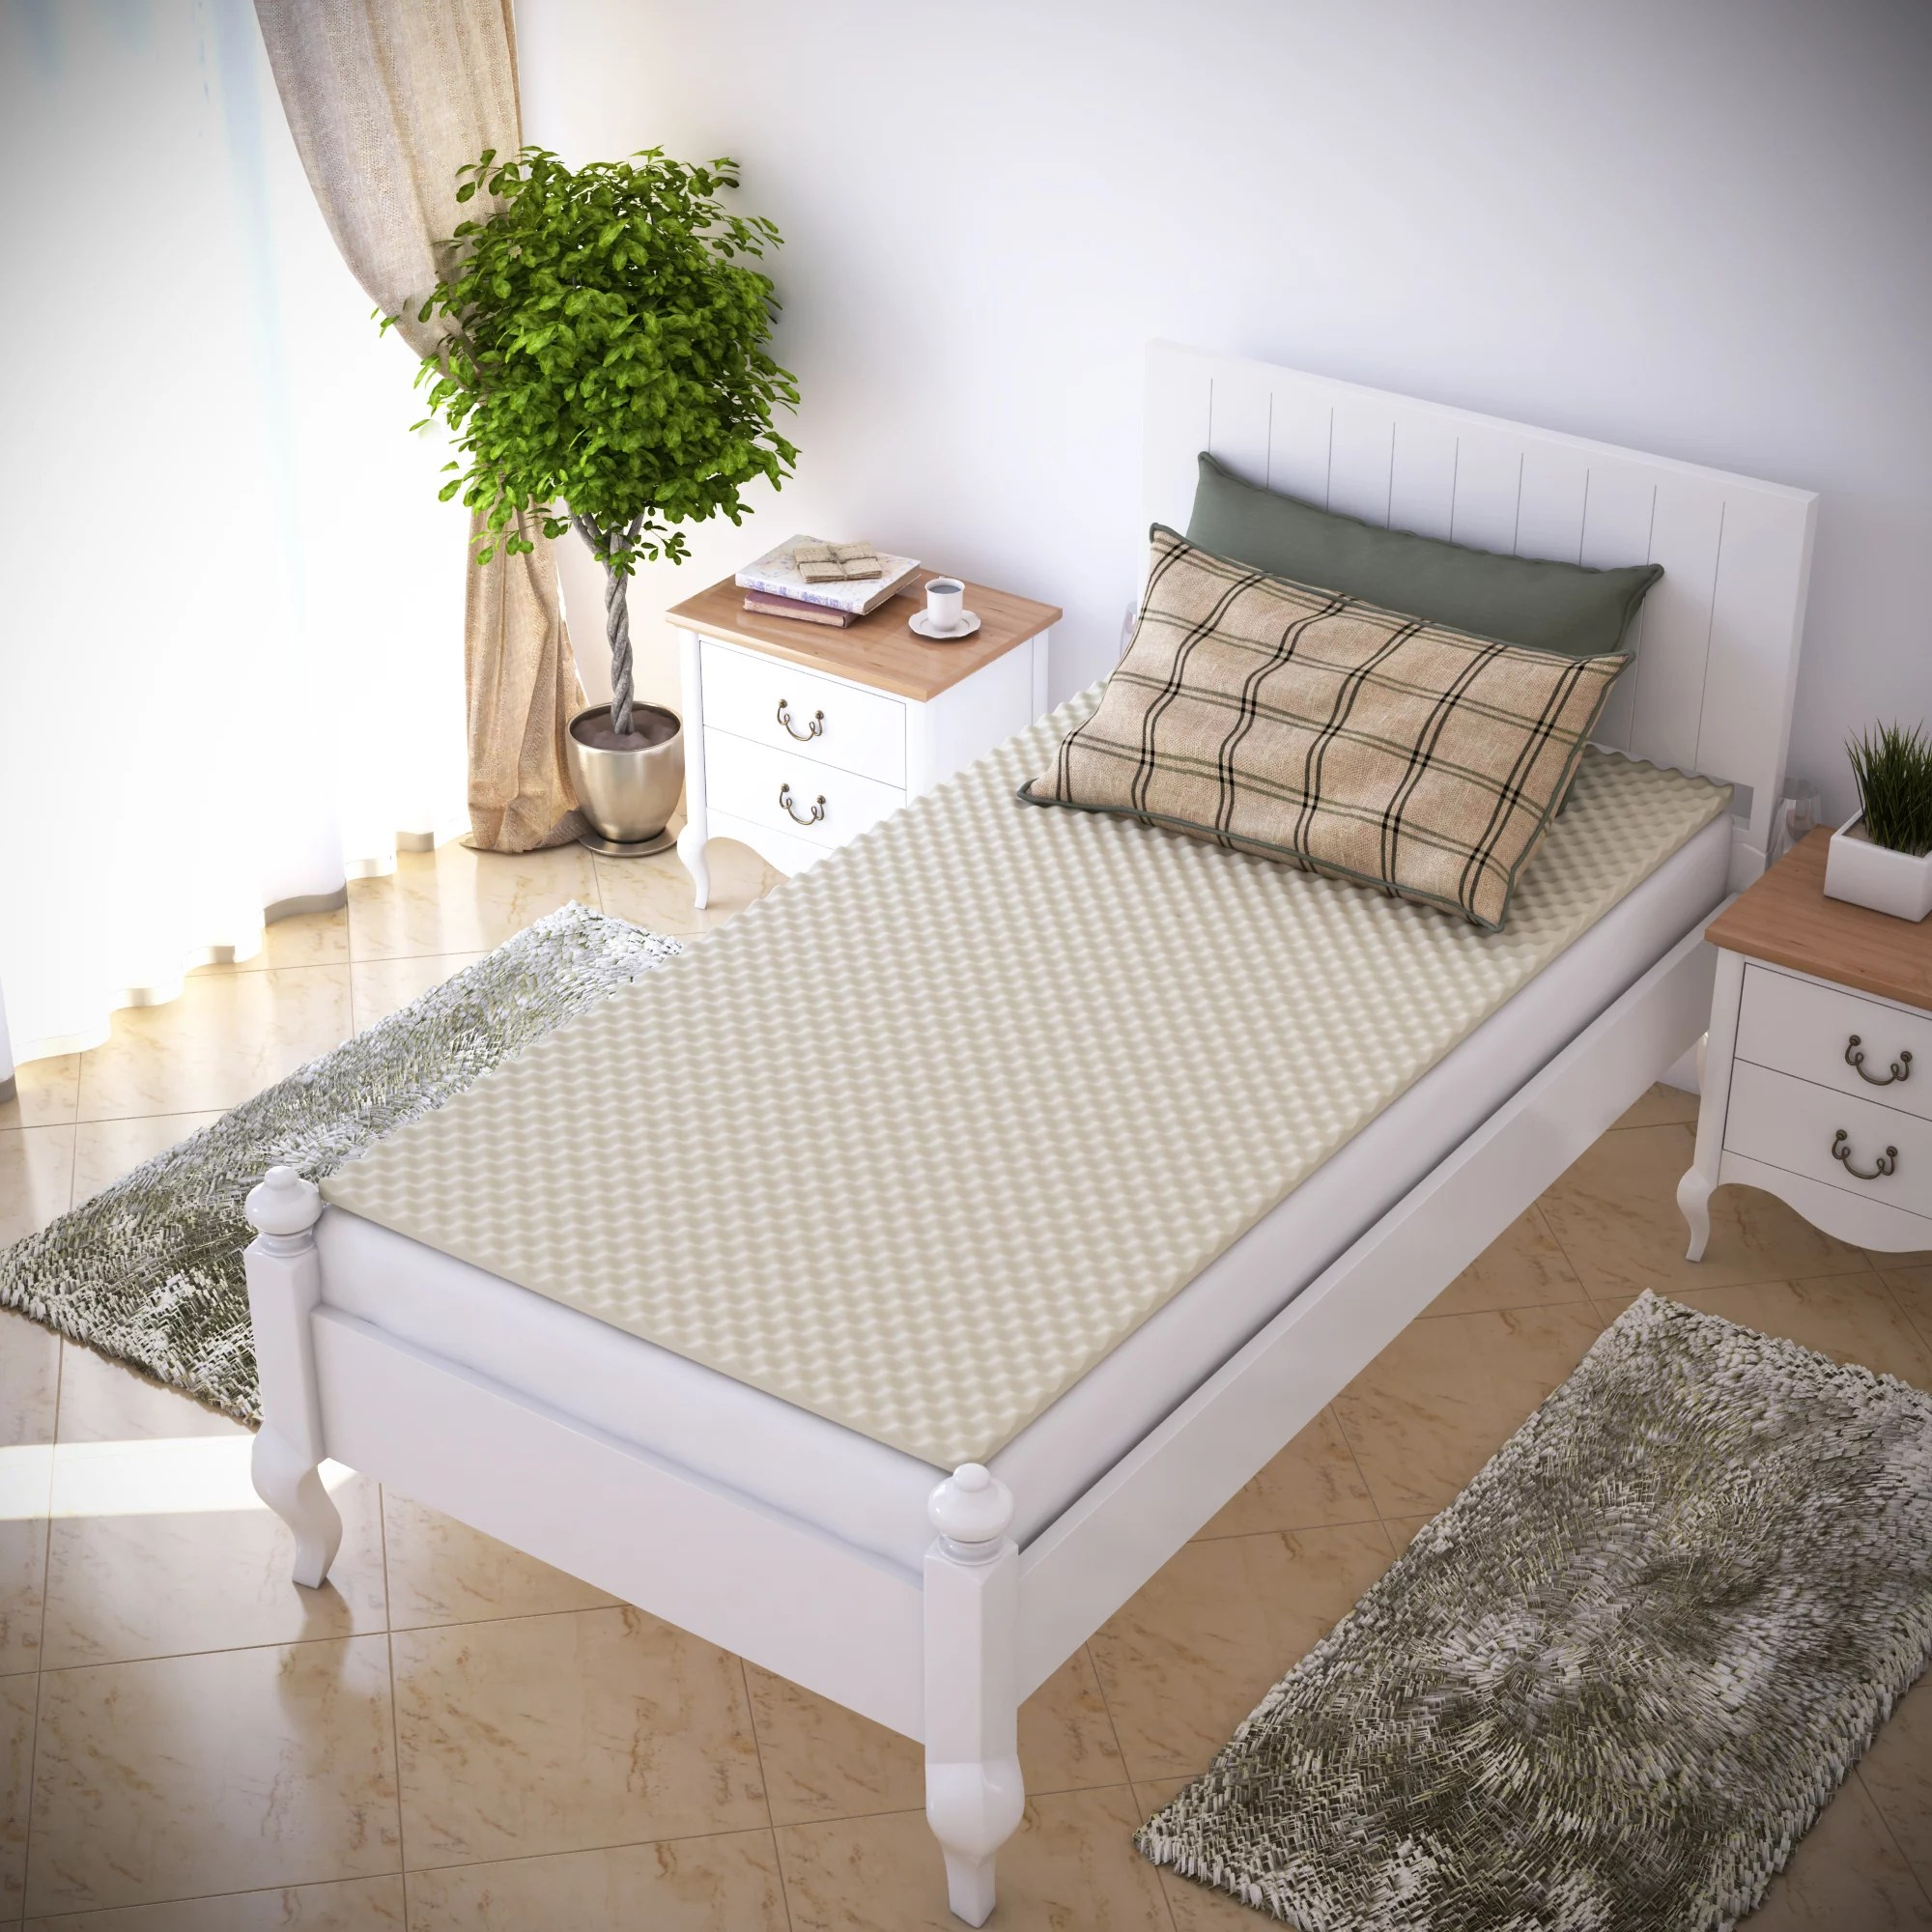 egg crate mattress topper twin and twin xl designed to add extra comfort and support by everyday home